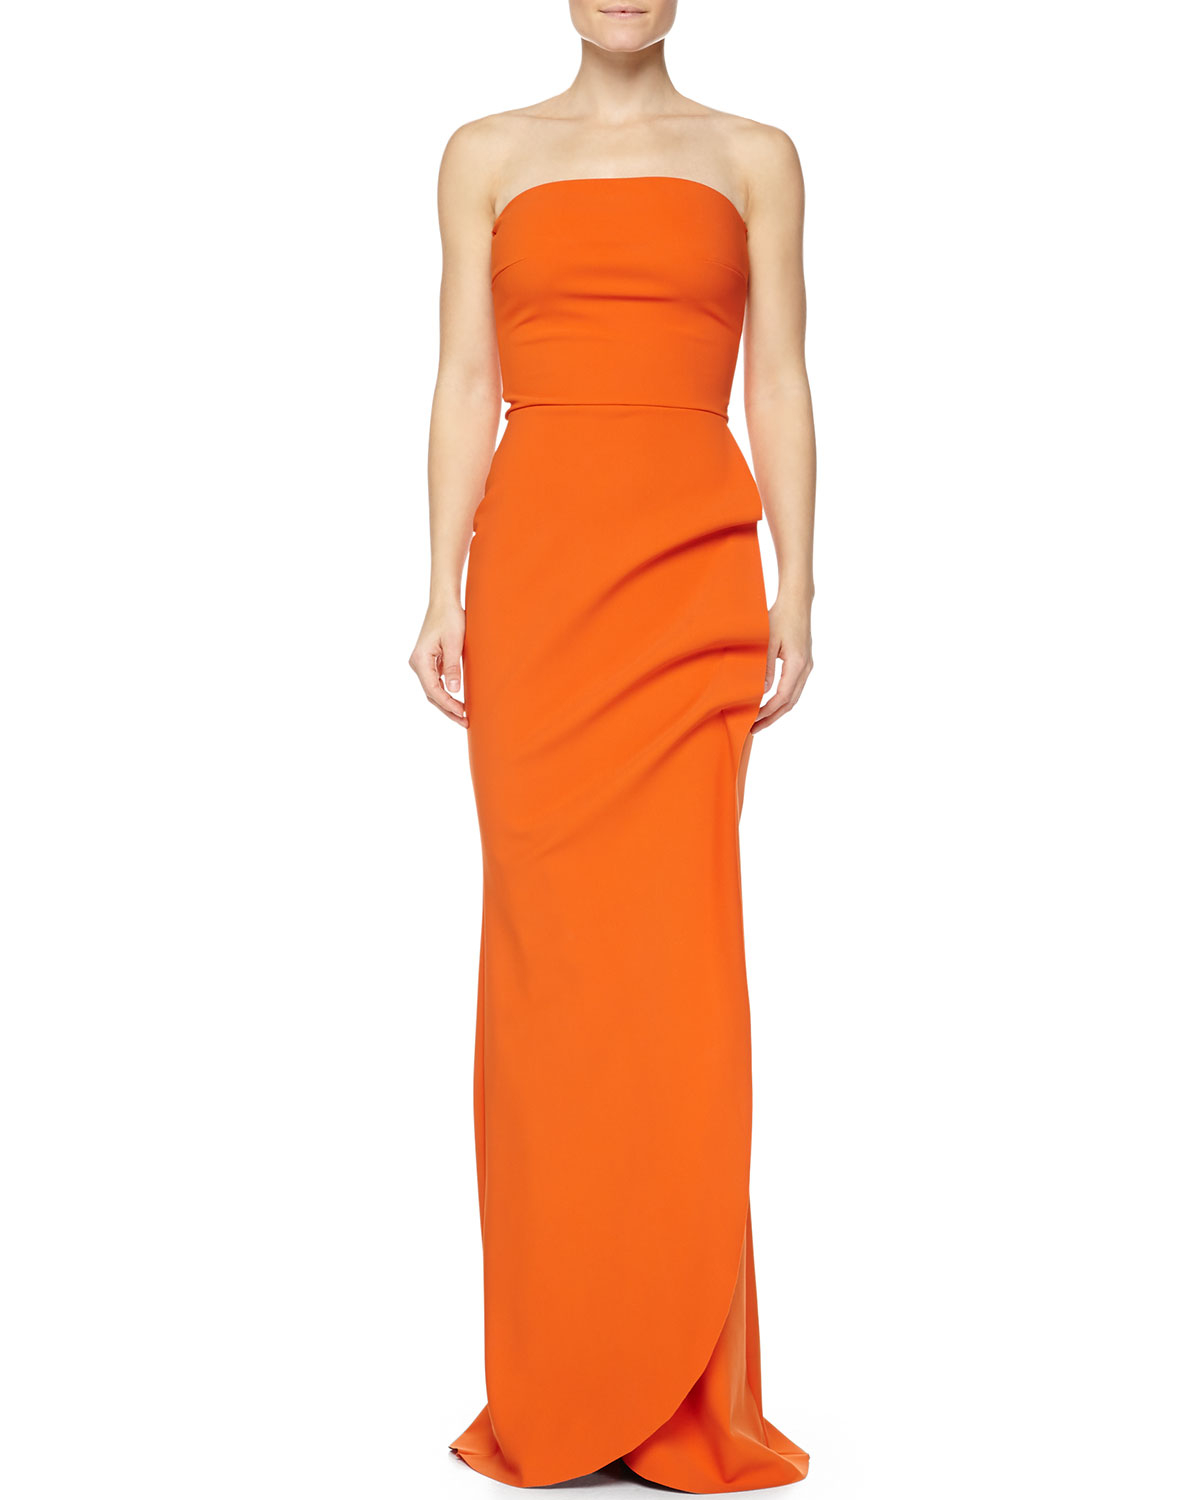 Chiara Boni The Most Popular Dress In America: La Petite Robe Di Chiara Boni Clotilde Sleeveless Long